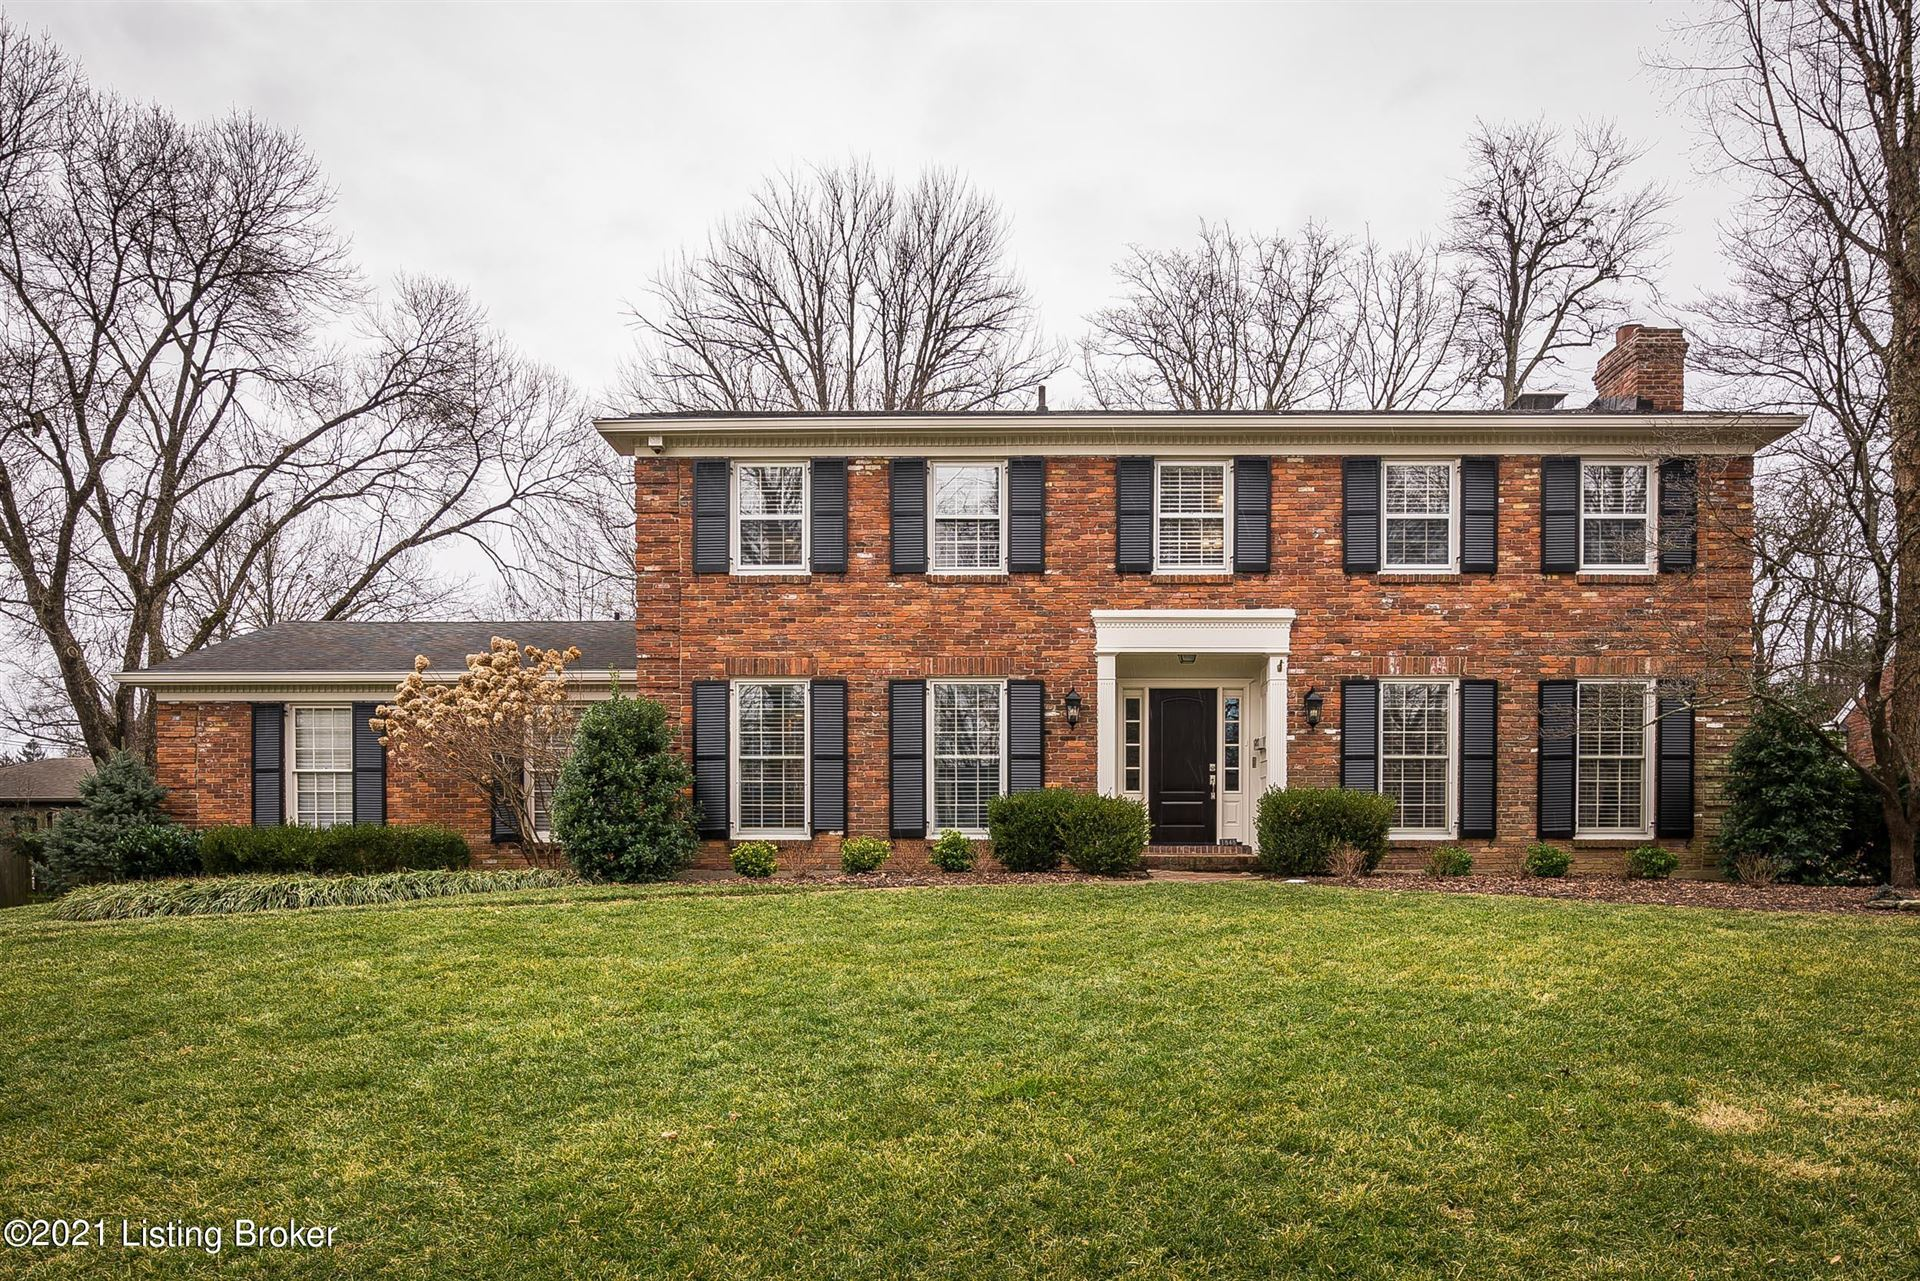 Photo for 1848 Trough Spring Ln, Louisville, KY 40205 (MLS # 1582770)